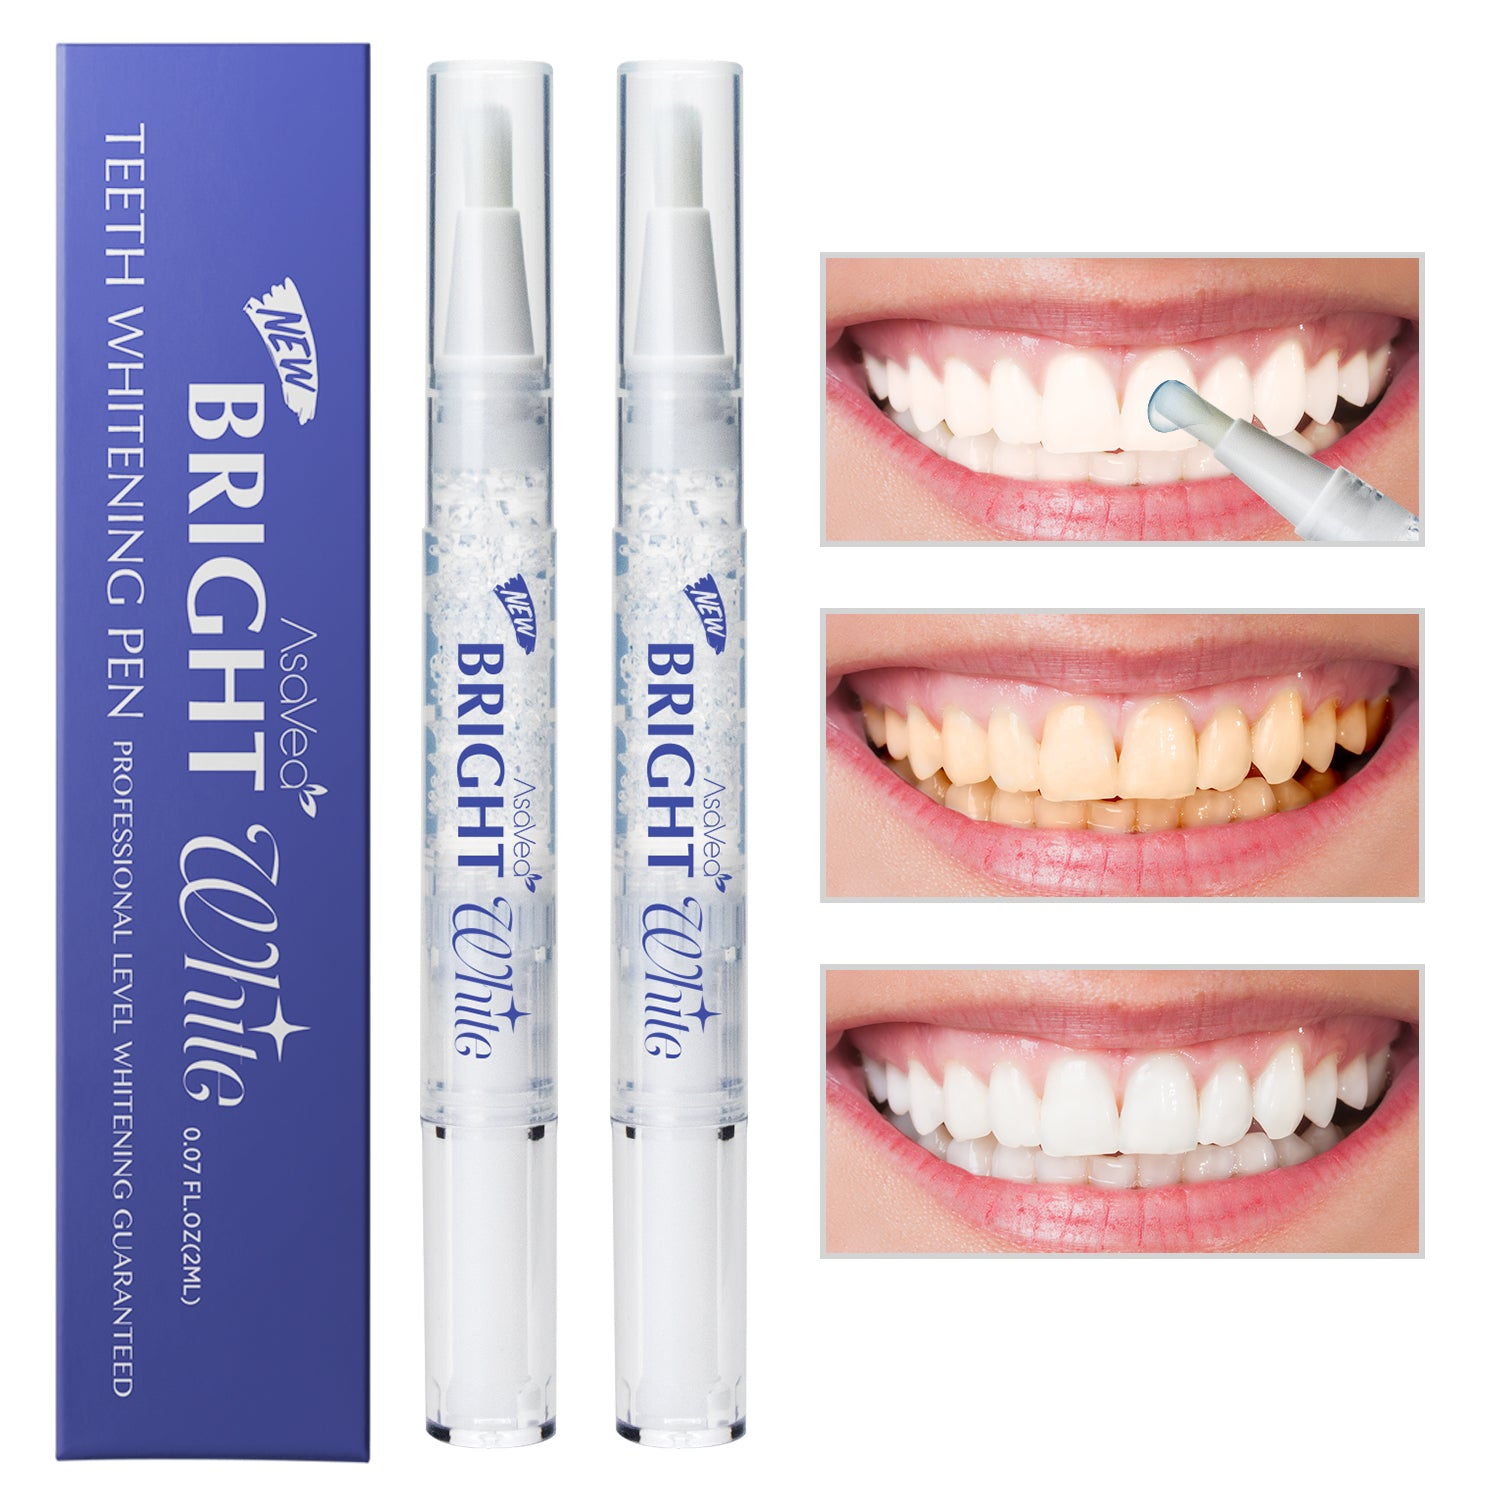 Asavea Teeth Whitening Pen 2 Pens More Than 20 Uses Effective Pain